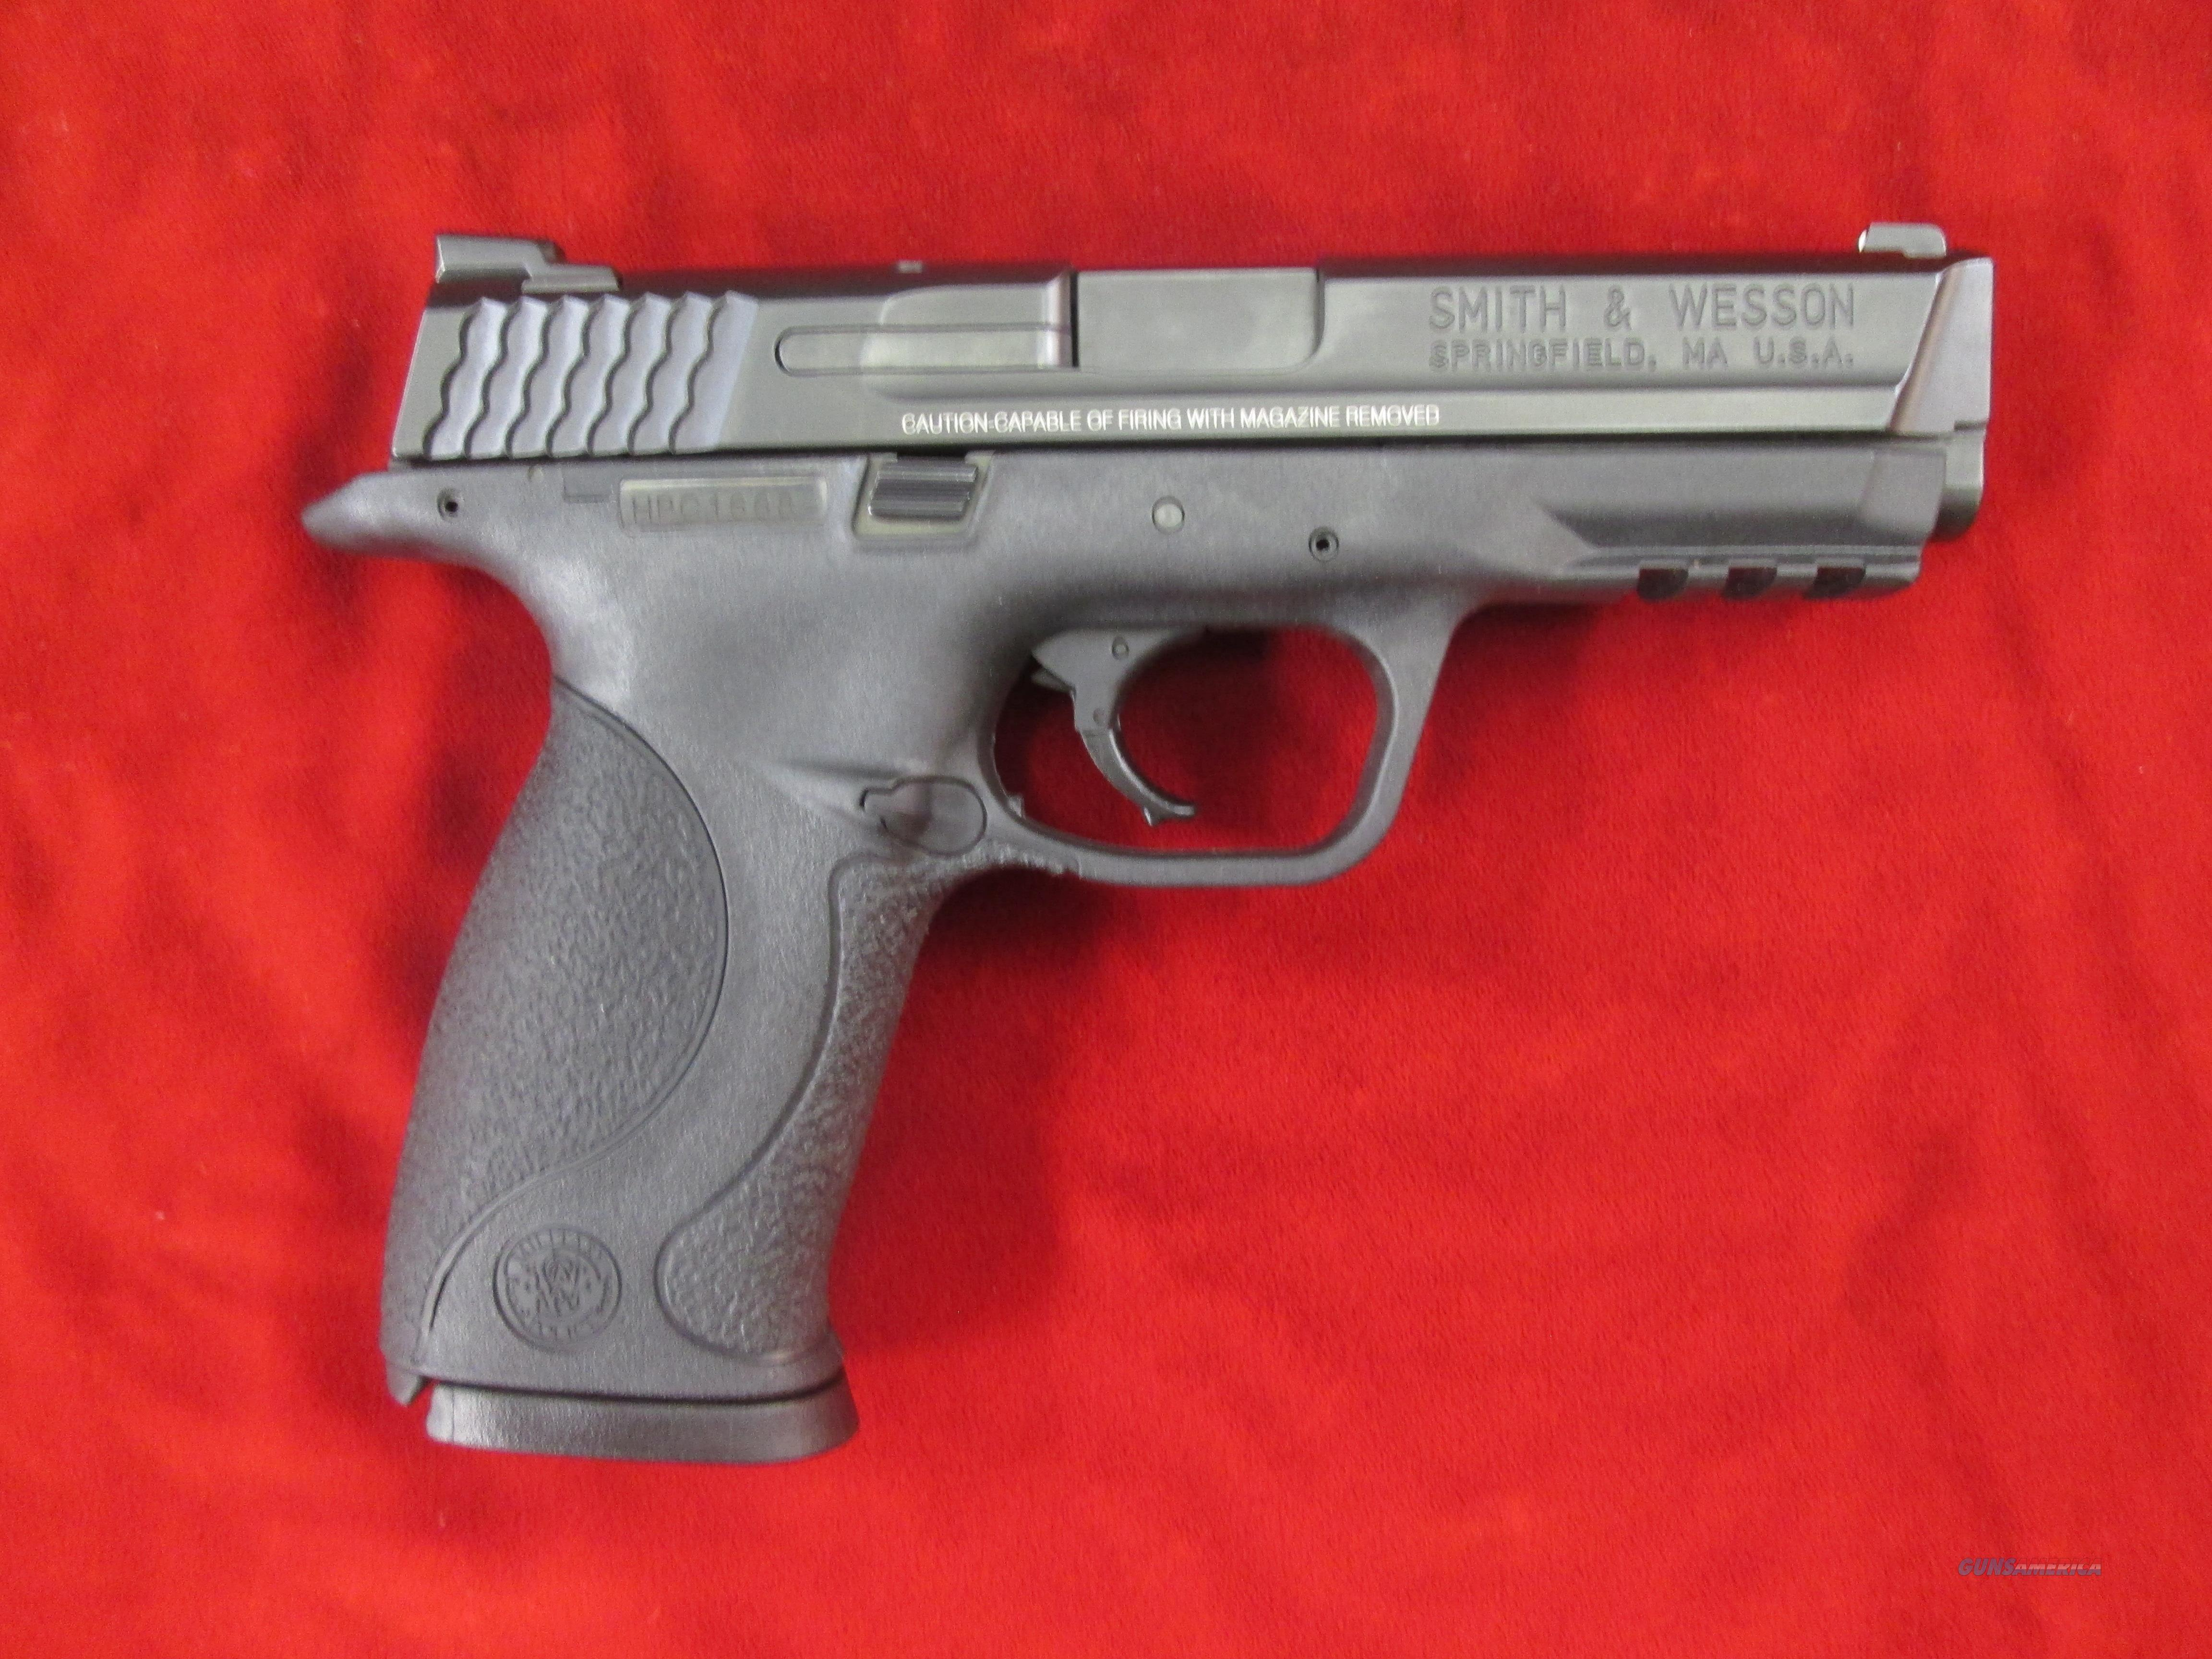 SMITH AND WESSON M&P 9MM USED   Guns > Pistols > Smith & Wesson Pistols - Autos > Polymer Frame